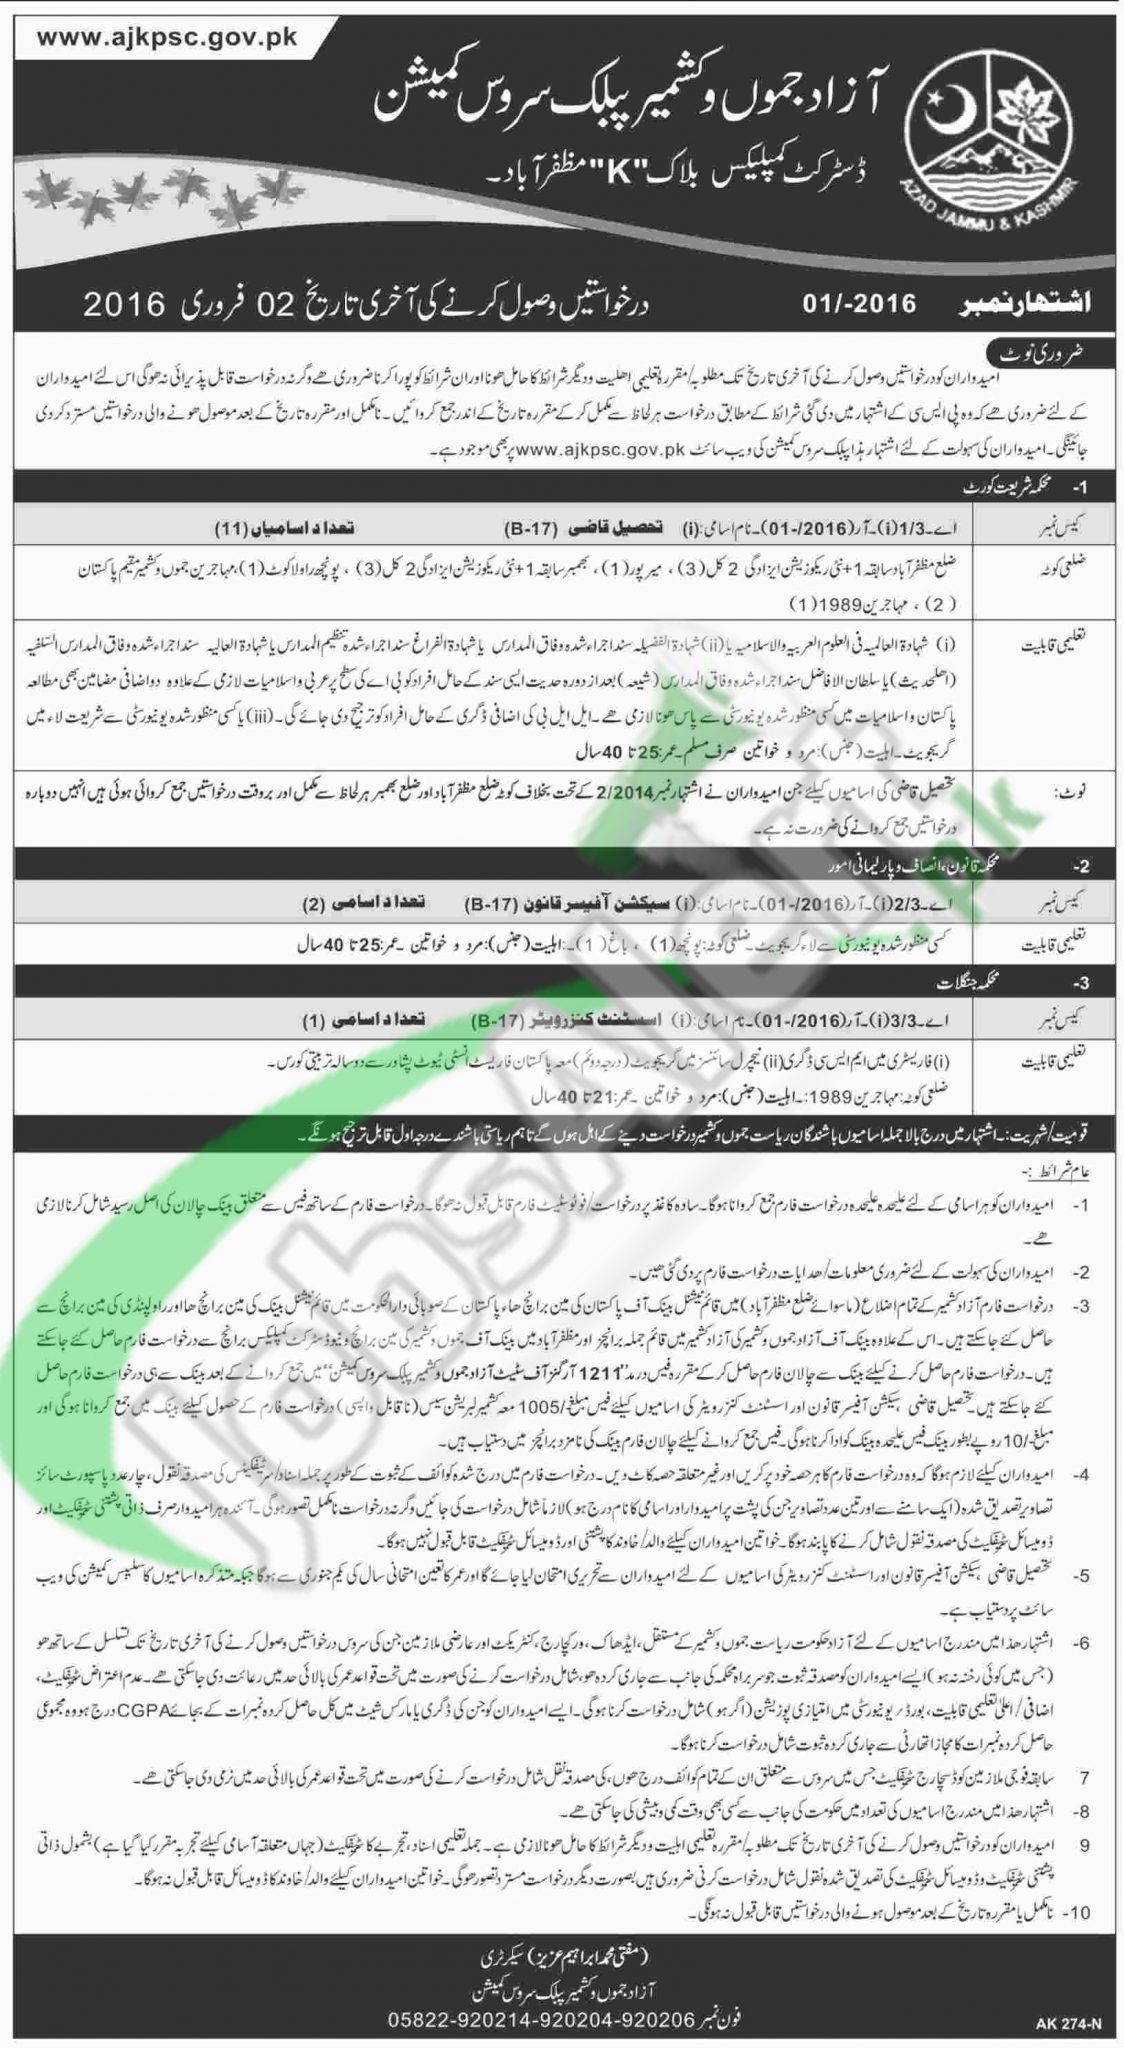 Vacant Situations in Public Service Commission Azad Jammu and Kashmir 2016